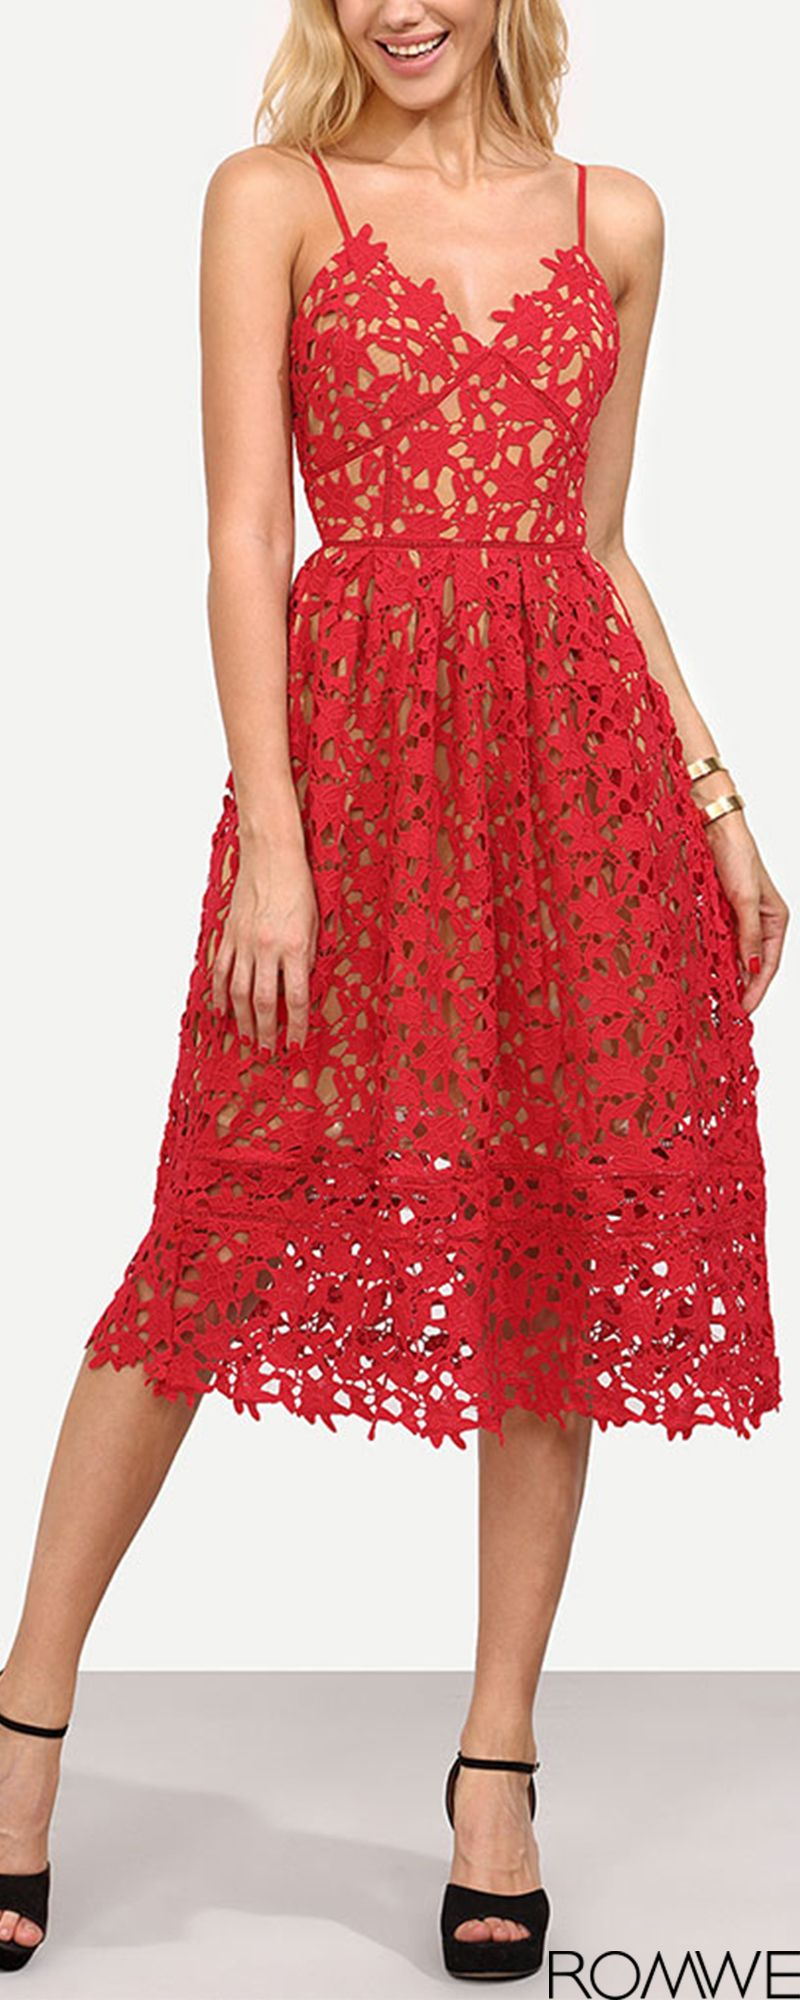 fa05d8b7e60b Red Hollow Out Fit Flare Lace Cami Dress | dresses | Vestidos ...